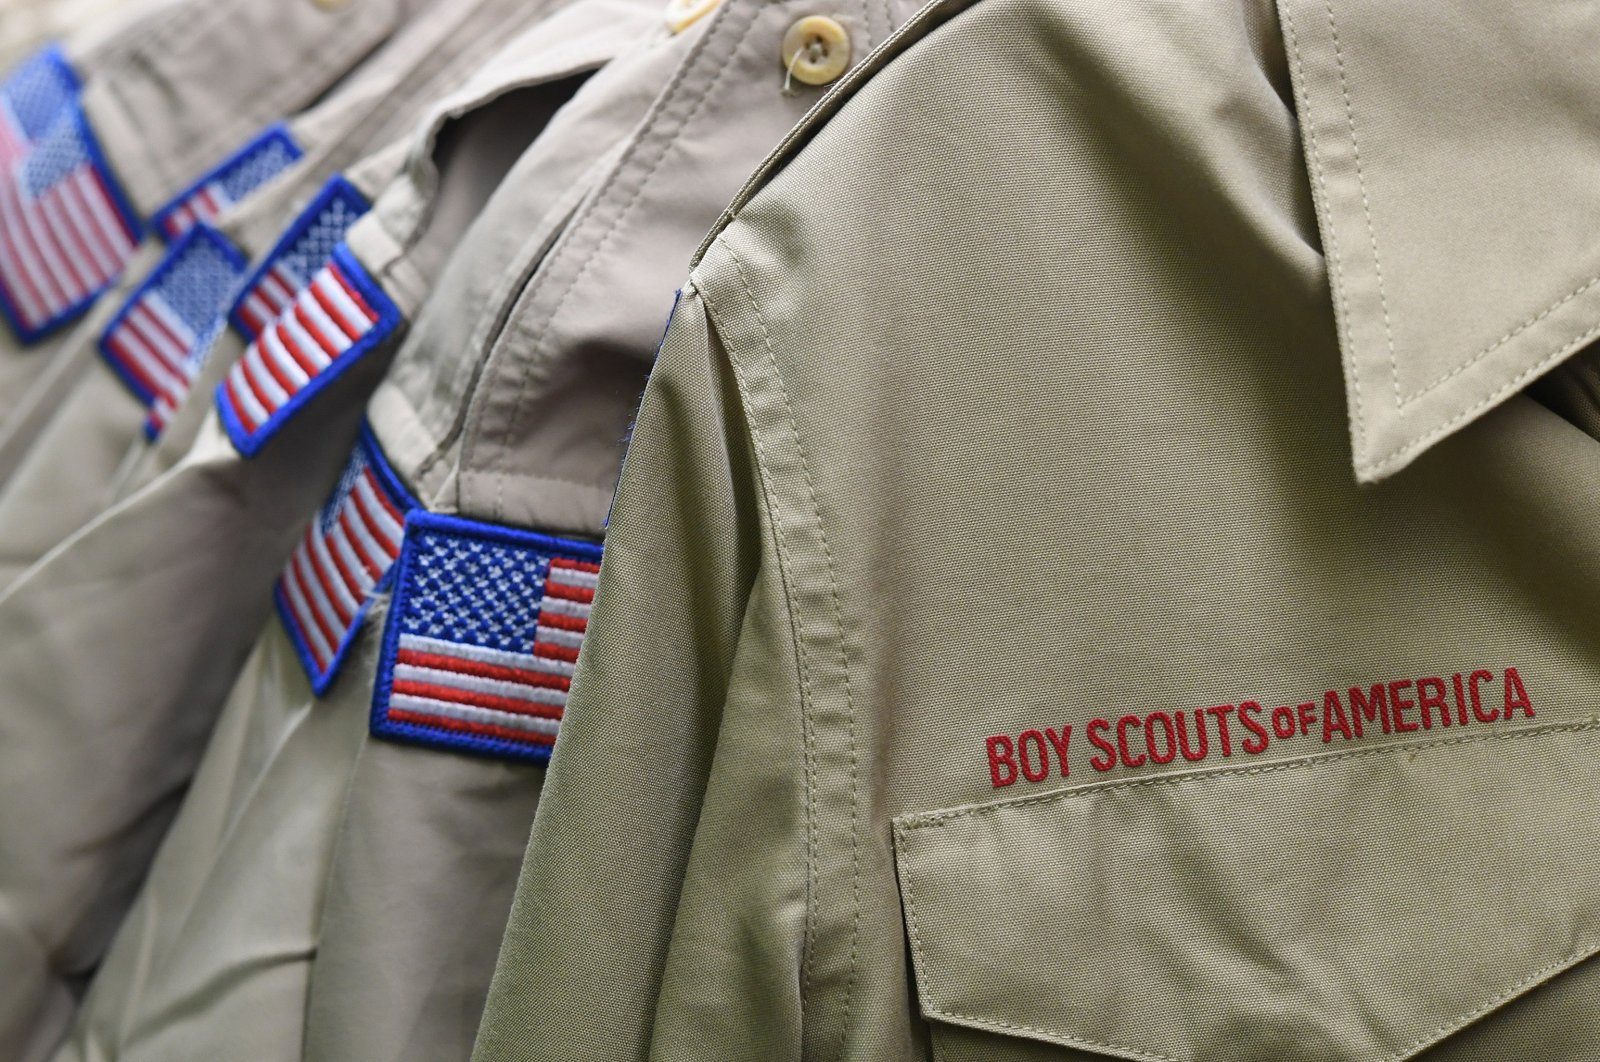 Boy Scouts of America uniforms are displayed in the retail store at the headquarters for the French Creek Council of the Boy Scouts of America in Summit Township, PA, on Feb. 18, 2020. (AP Photo)